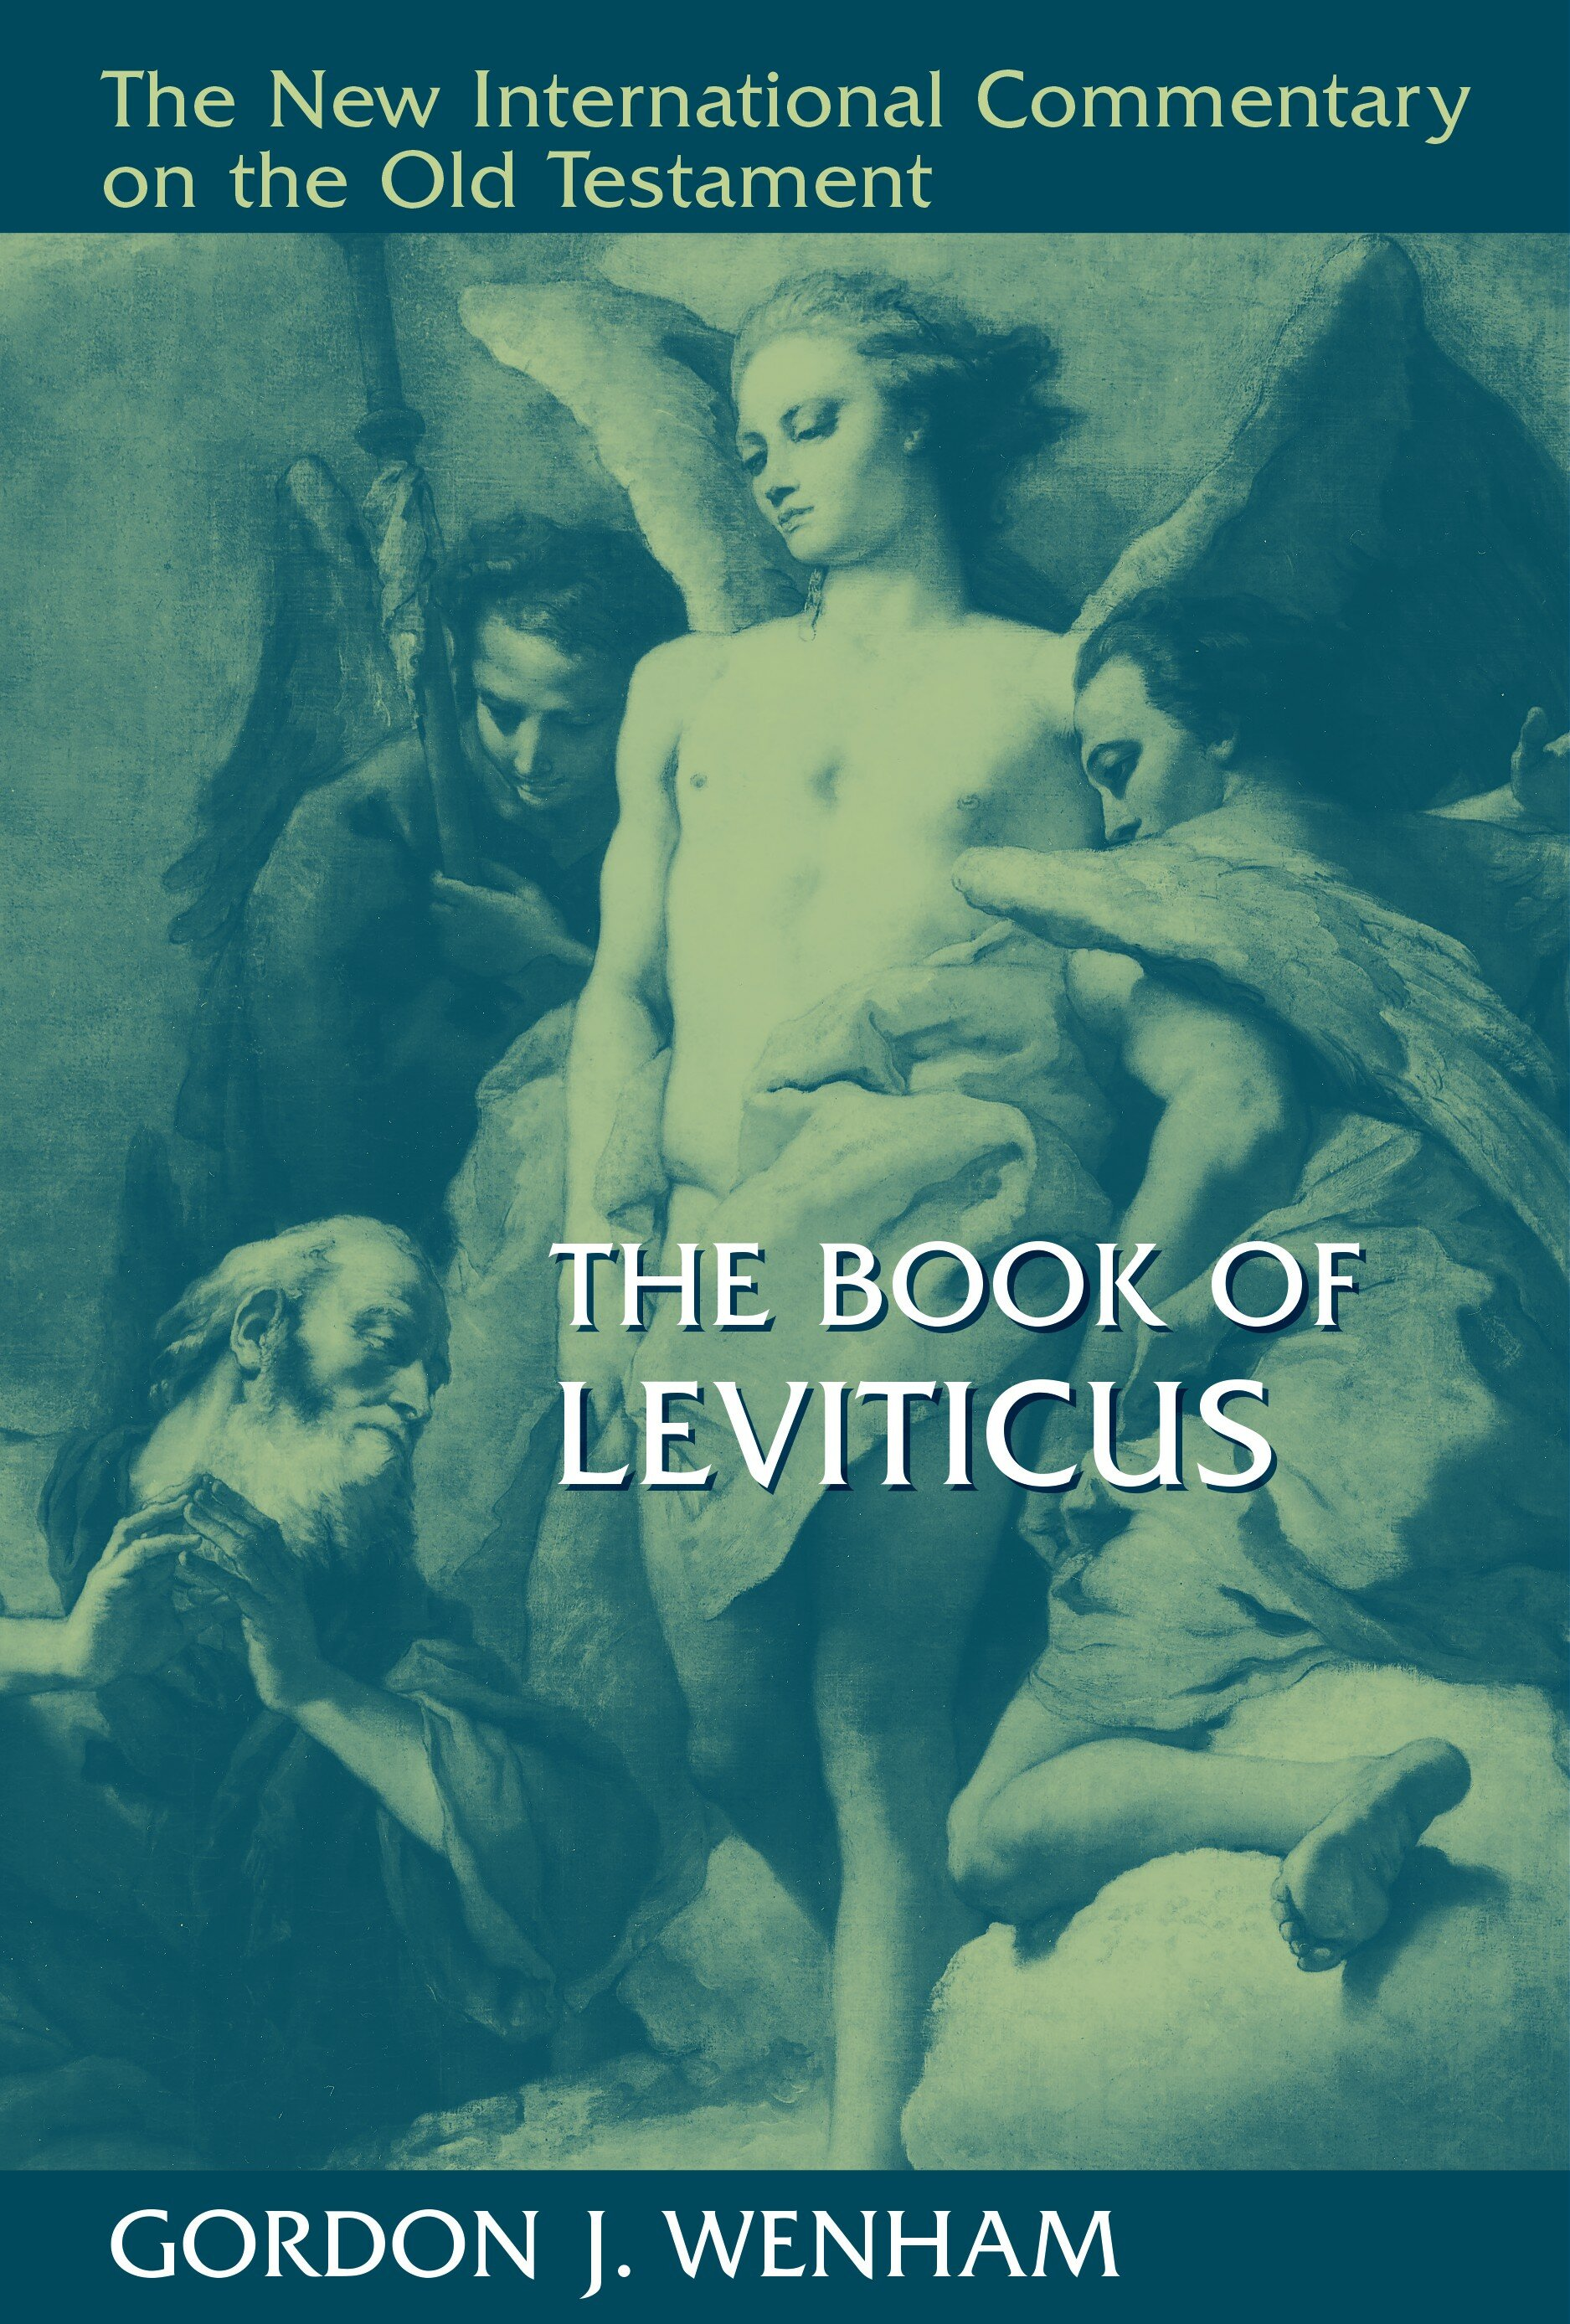 The Book of Leviticus (The New International Commentary on the Old Testament | NICOT)